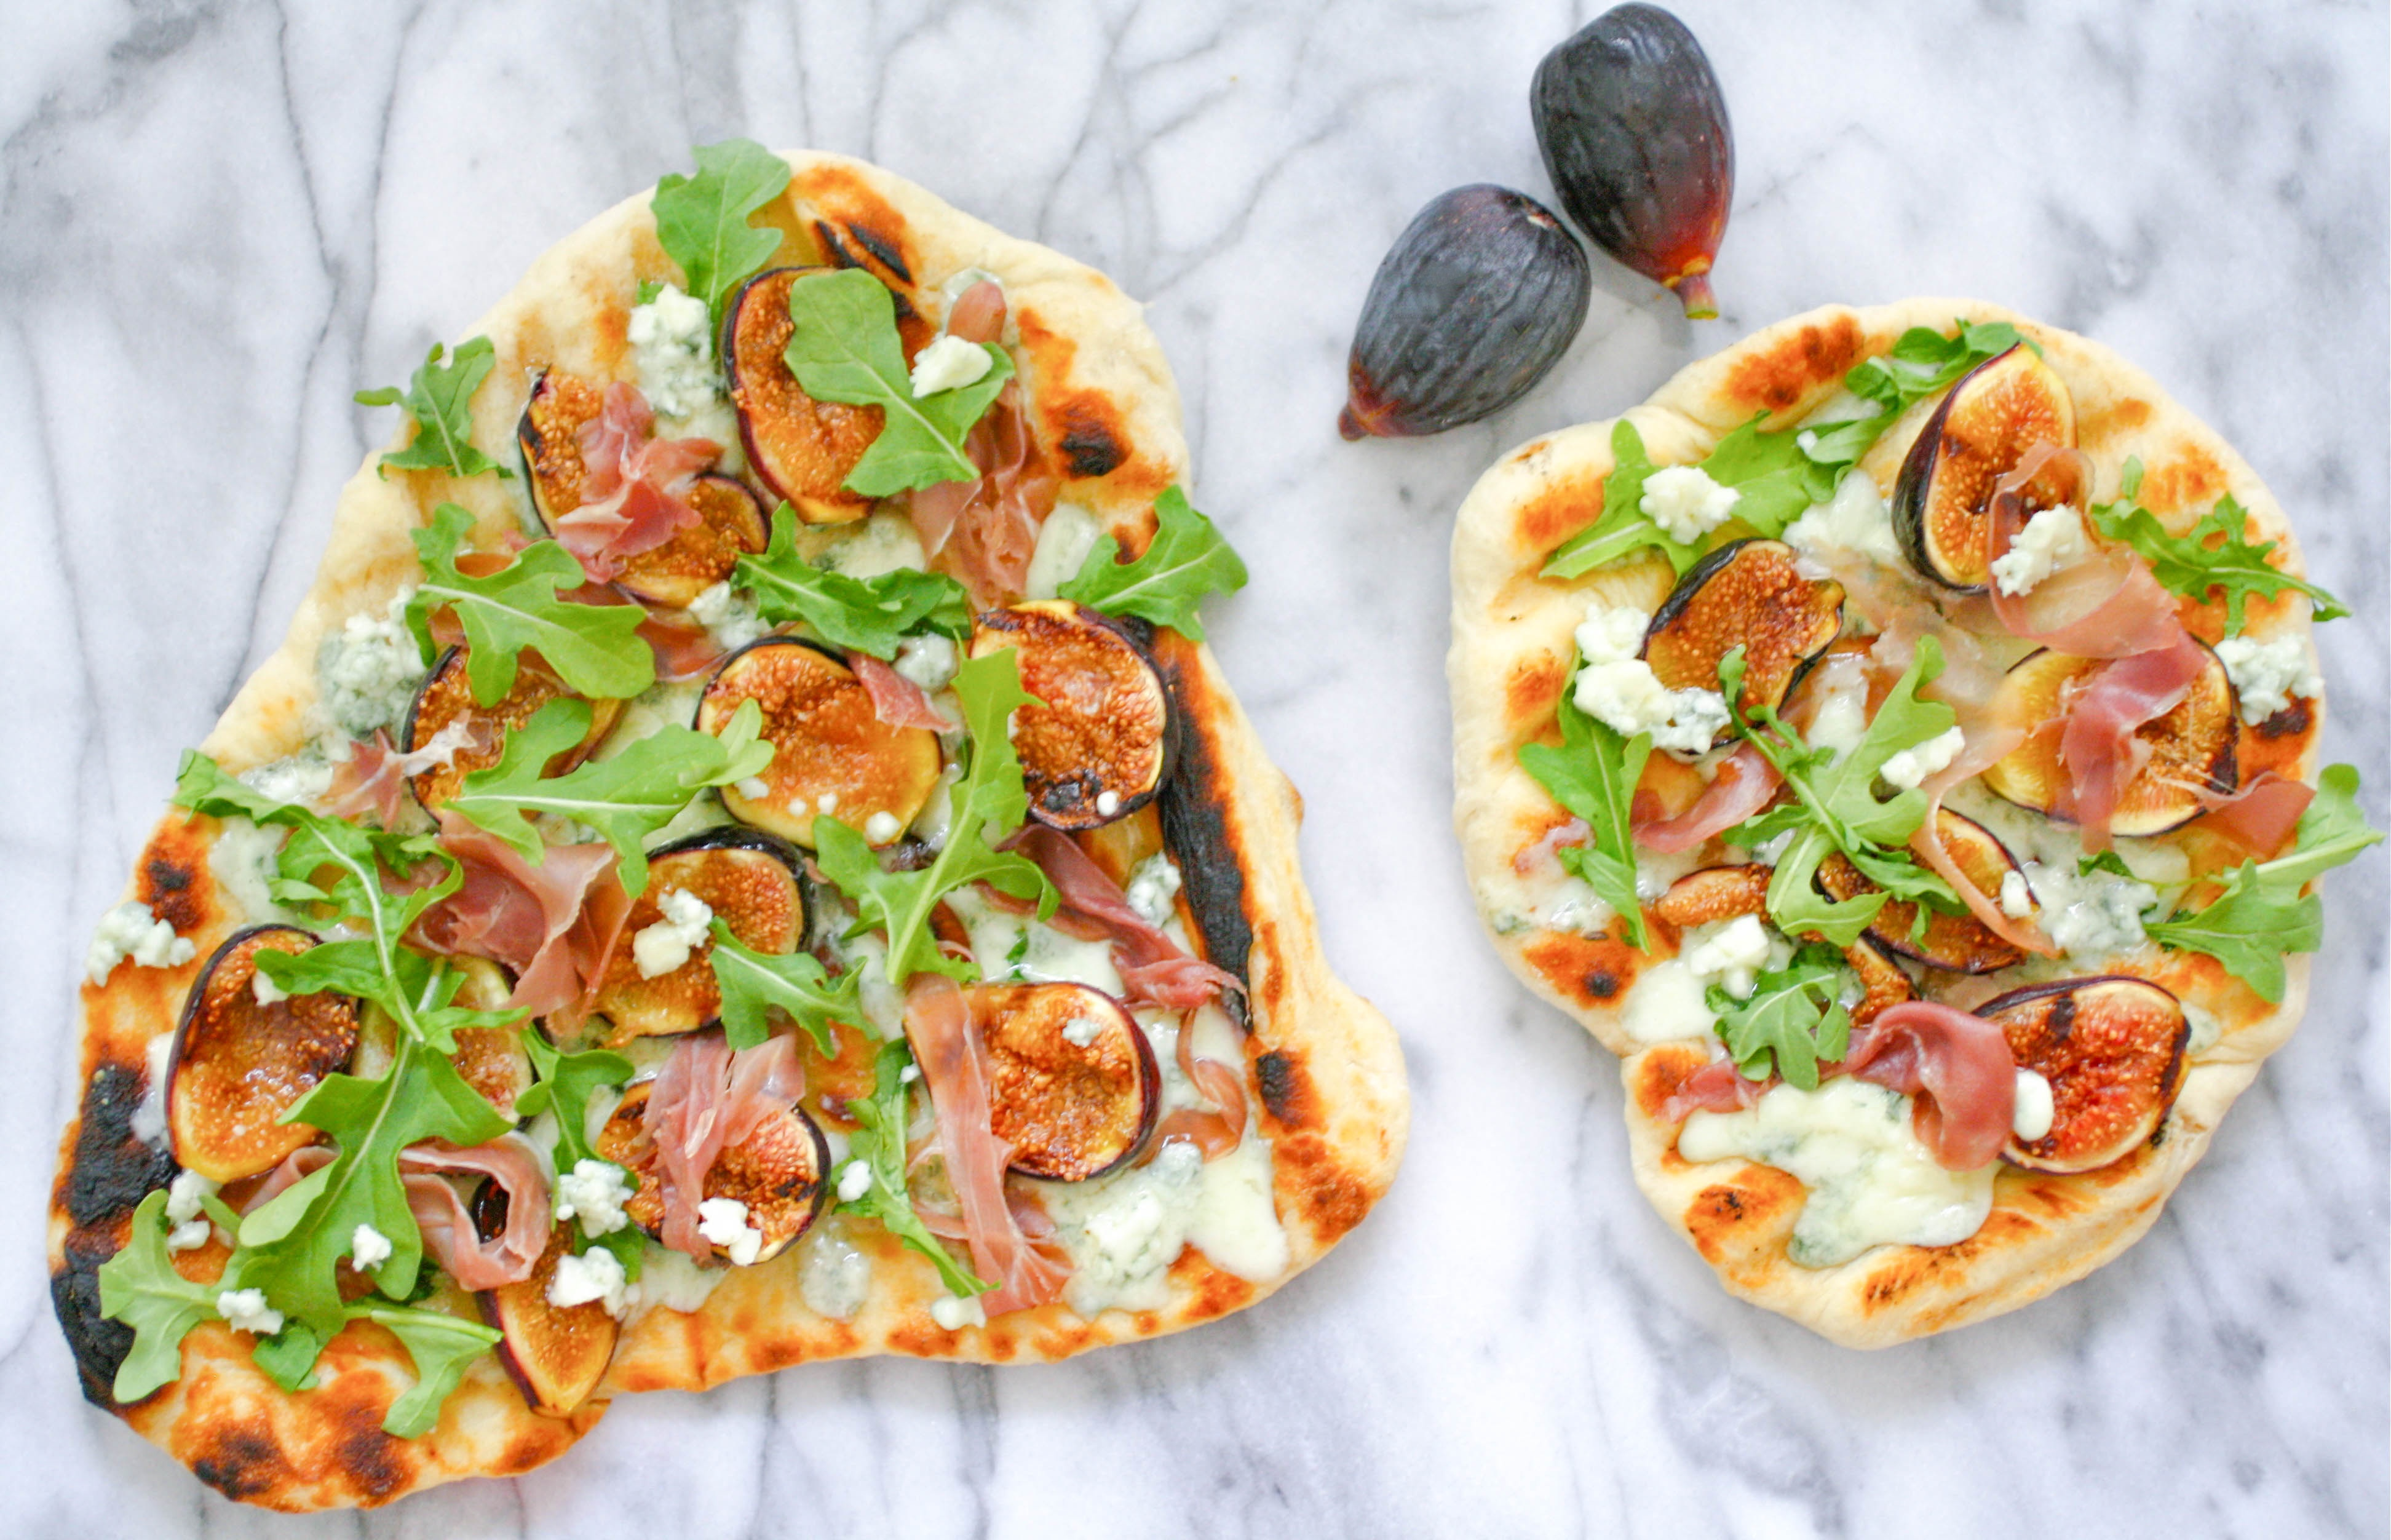 Grilled Pizza with Fig, Prosciutto, and Blue Cheese is such a tasty pizza! You'll love how this Grilled Pizza with Fig, Prosciutto, and Blue Cheese turns out!